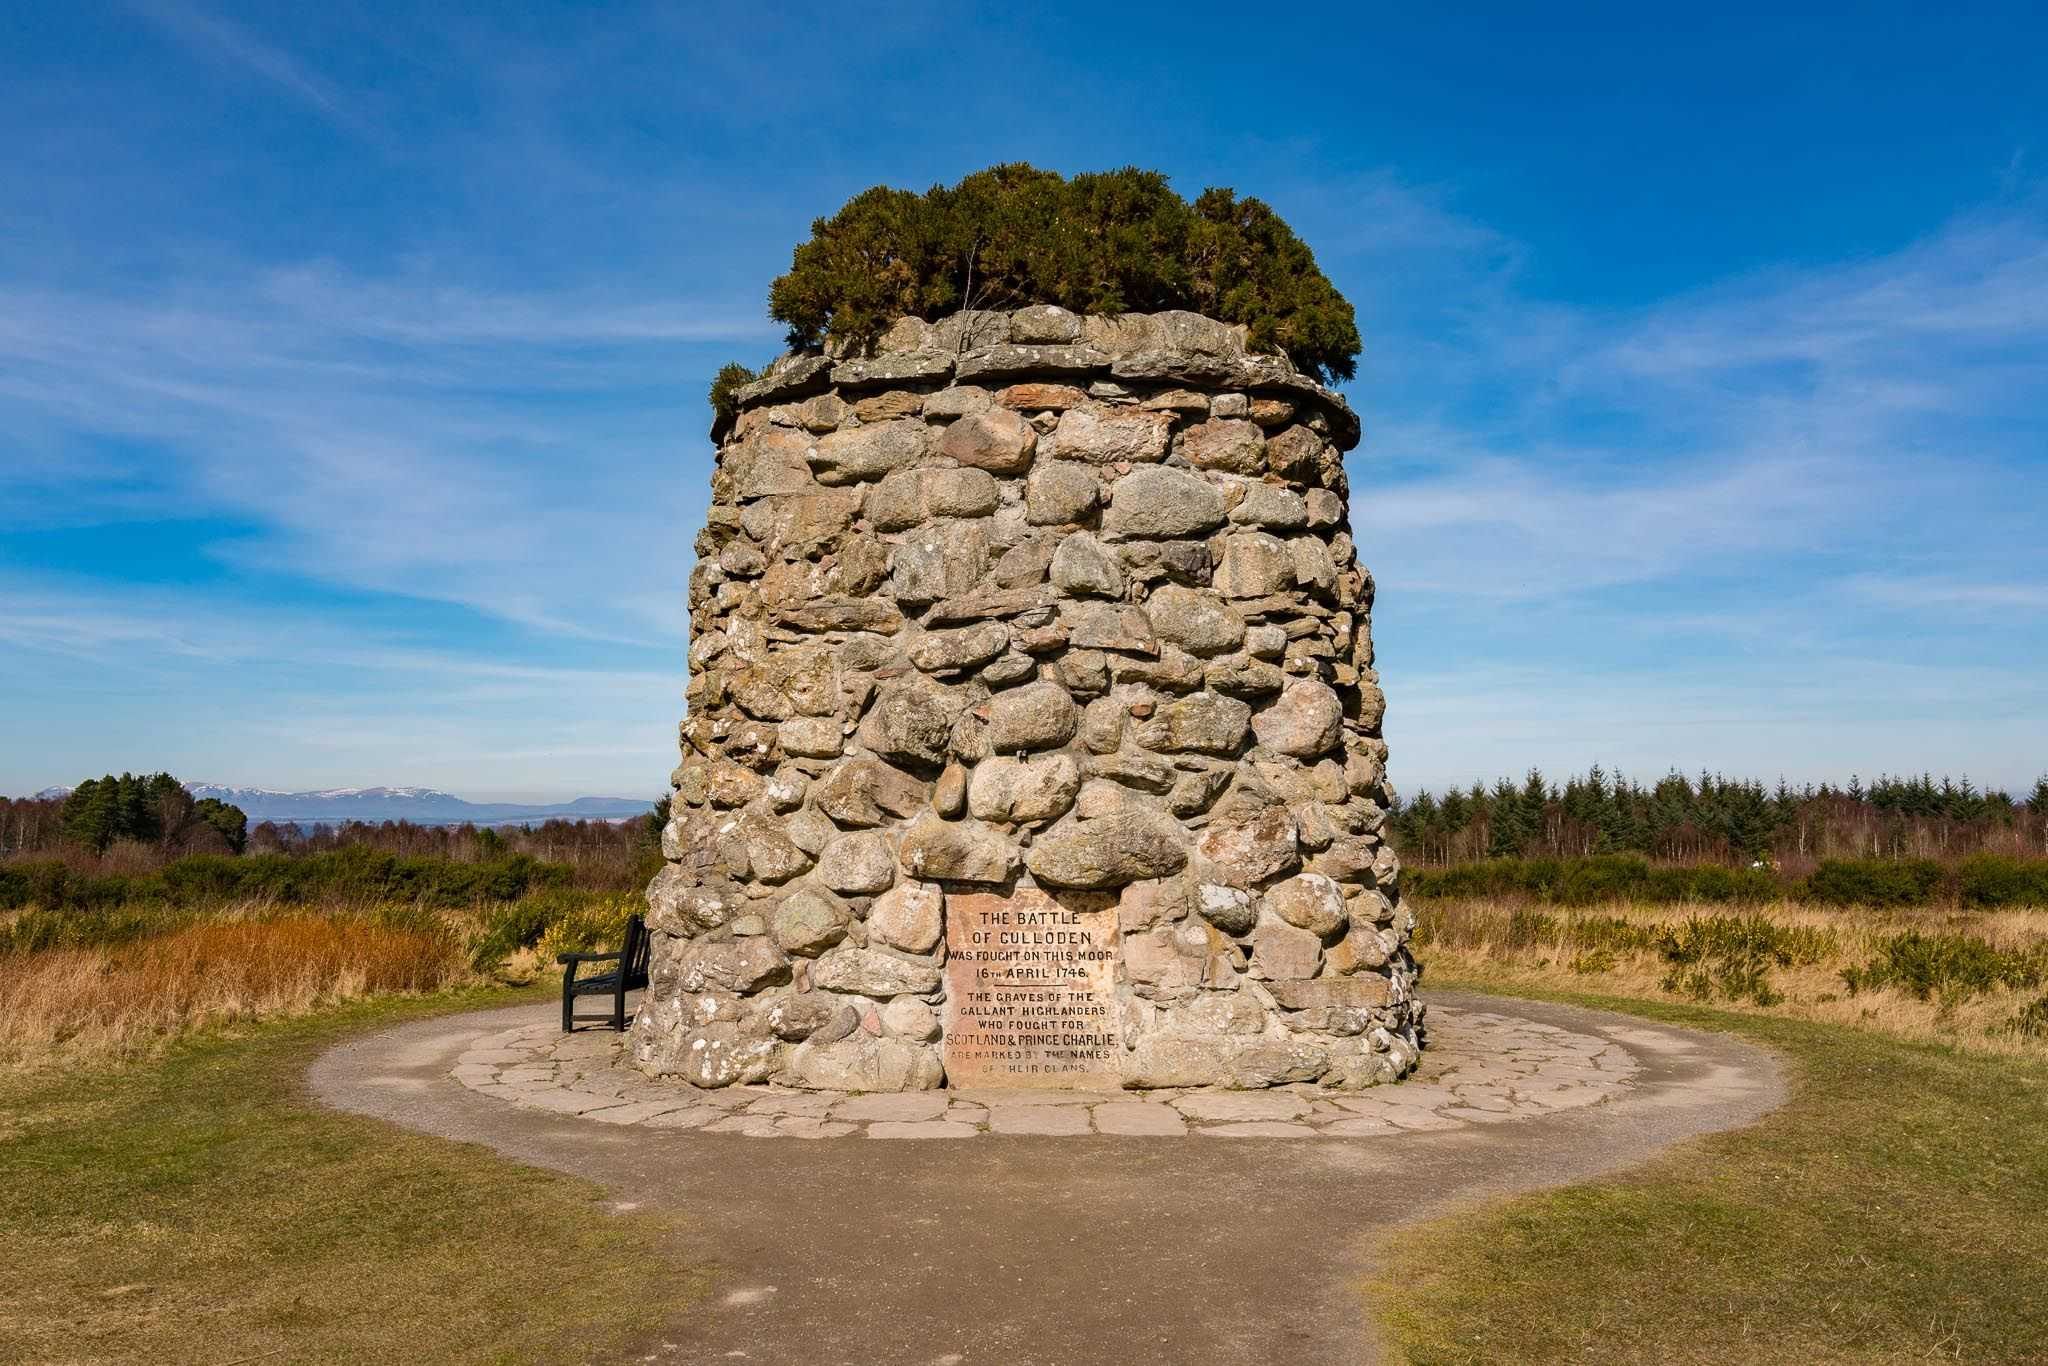 The memorial to the fallen at the Culloden Battlefield